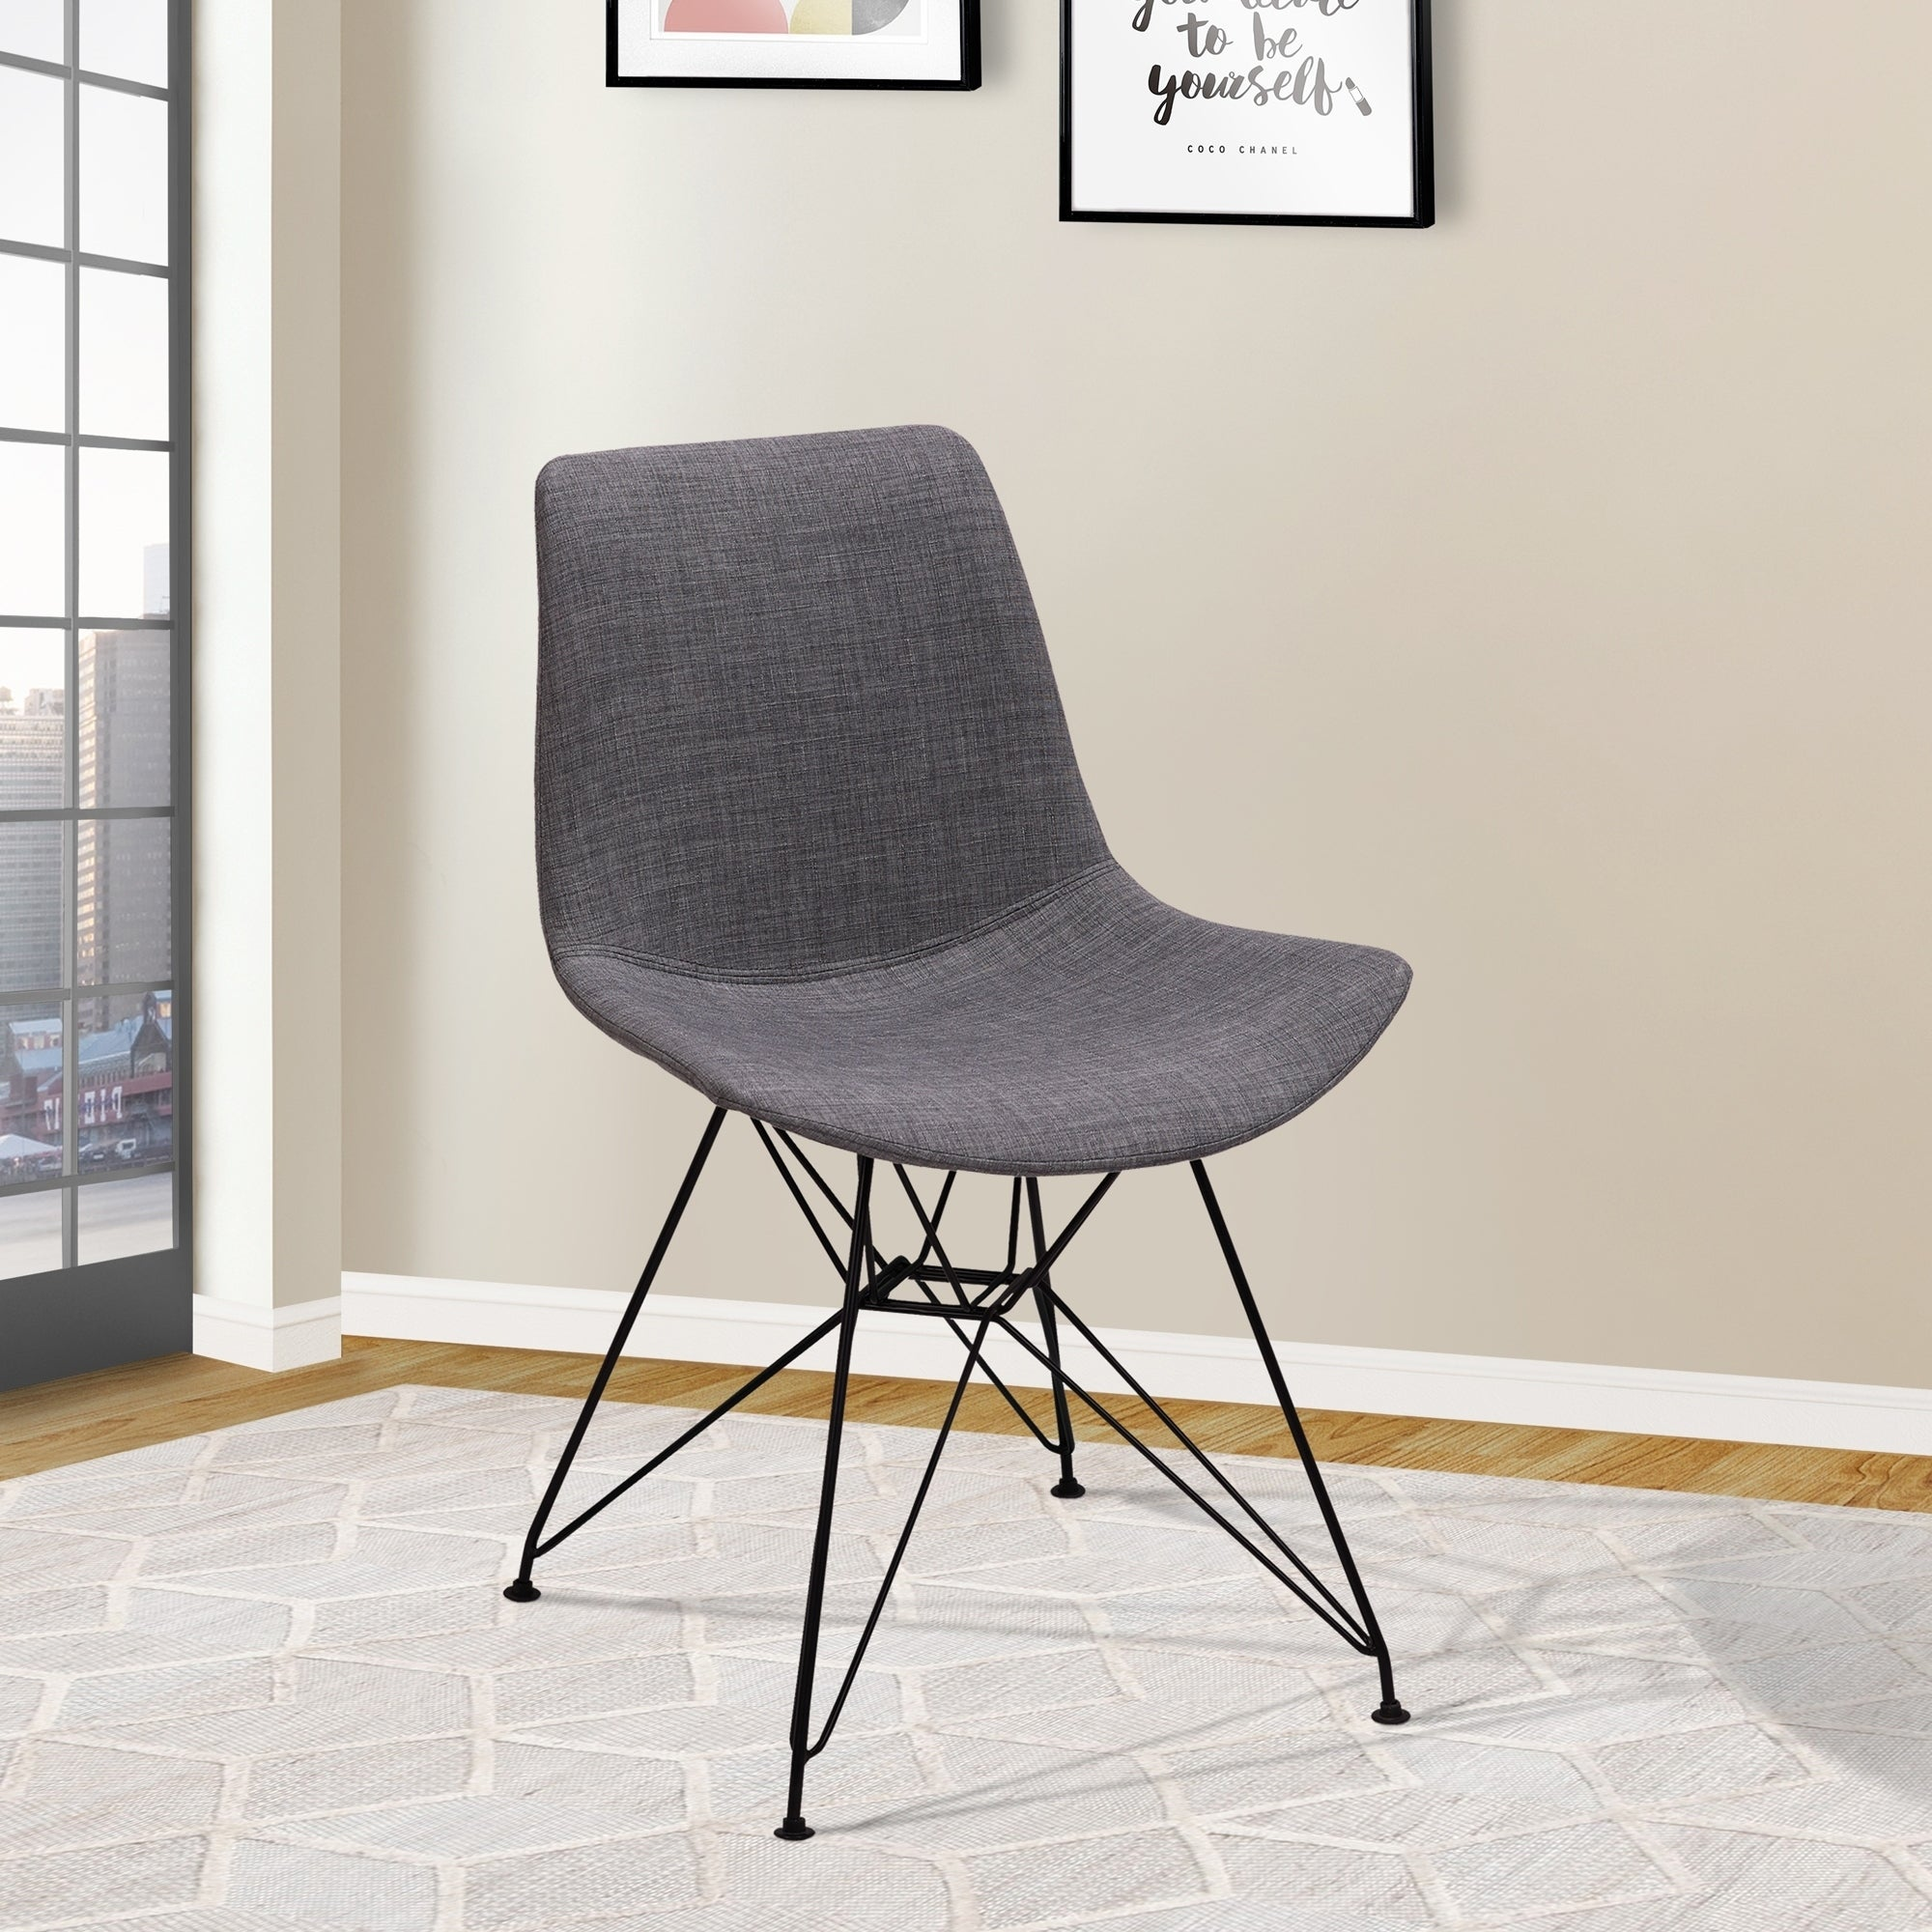 Sensational Pyramid Modern Dining Chair In Black Painted Chrome With Charcoal Fabric Caraccident5 Cool Chair Designs And Ideas Caraccident5Info